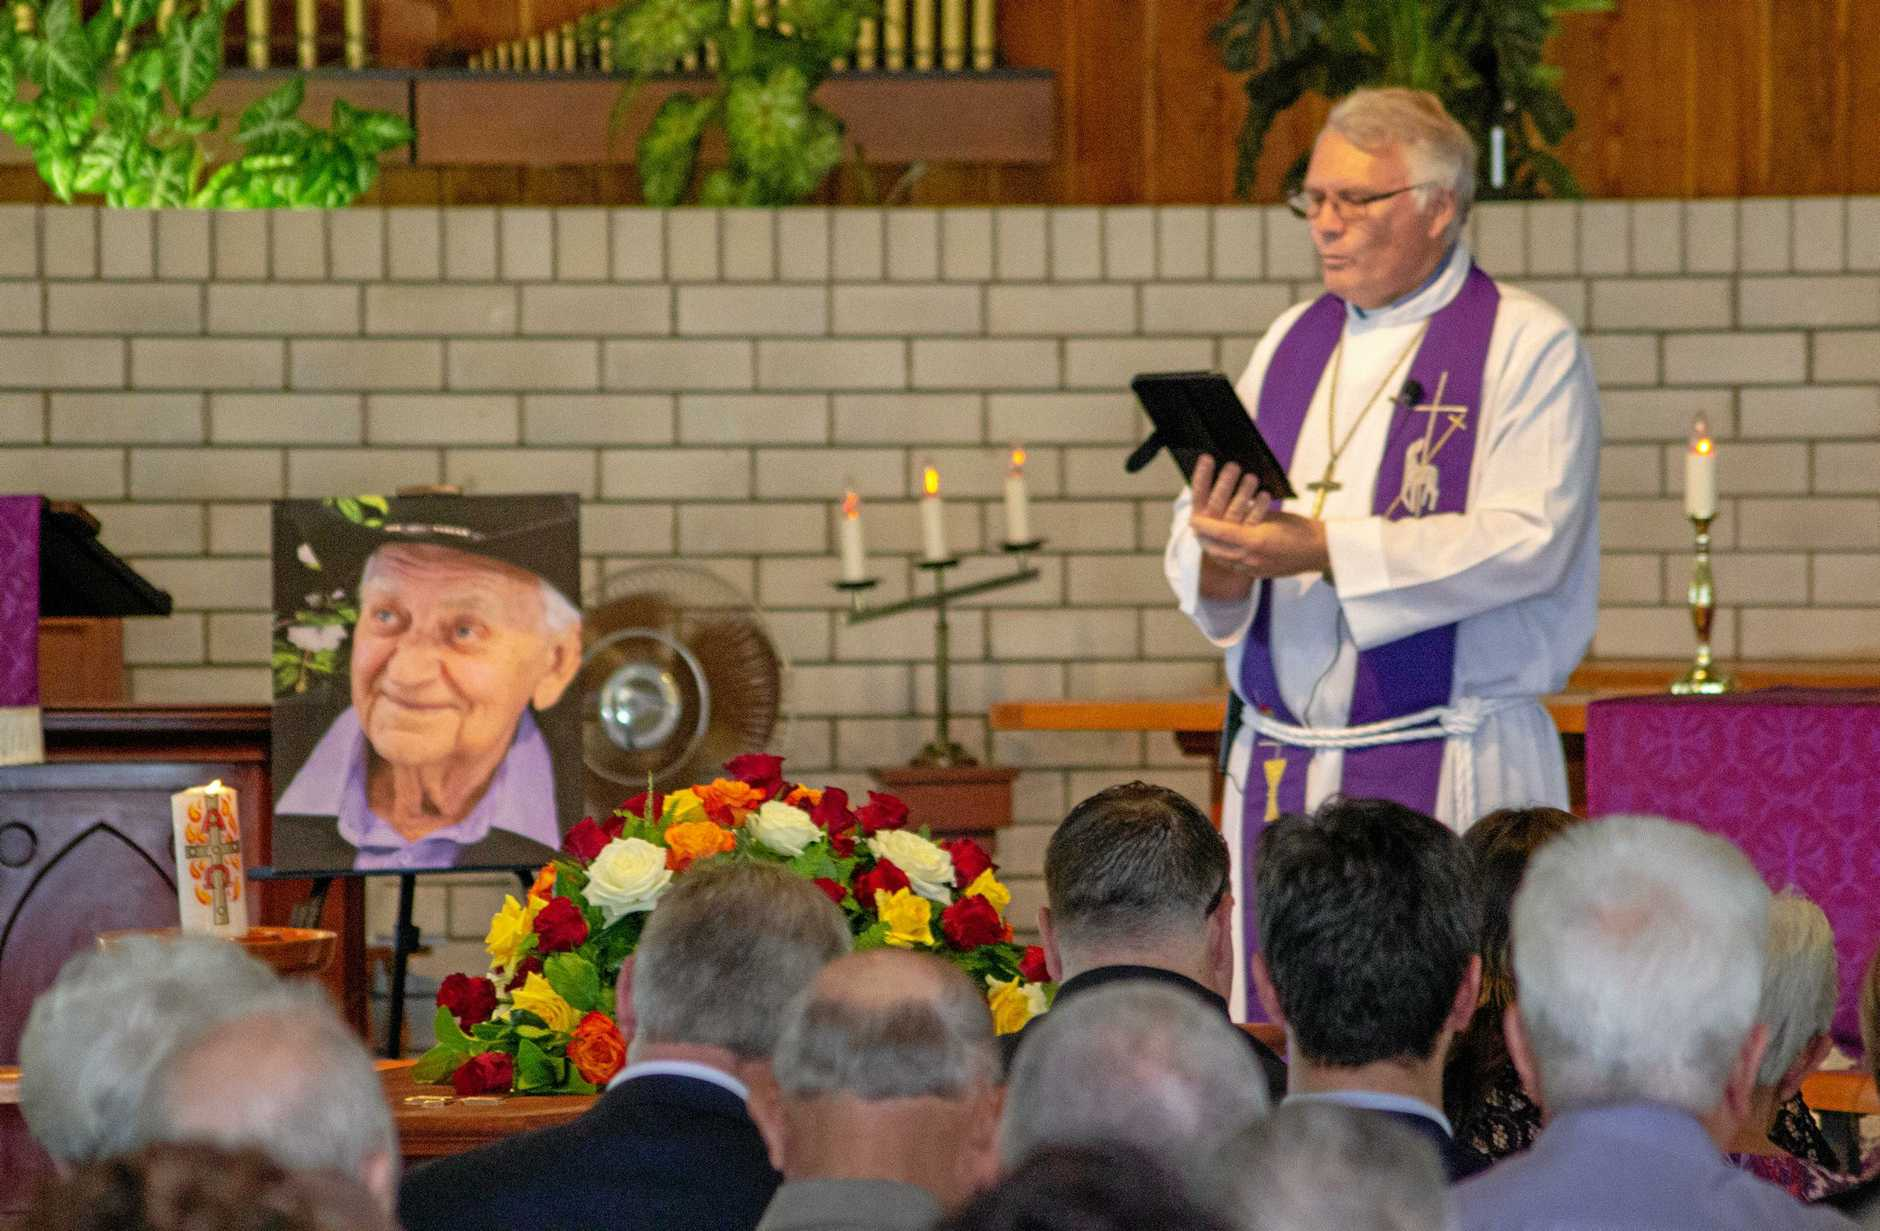 A CHARACTER: Pastor Noel Burton speaks at the funeral of Ray Orme Bachmann.